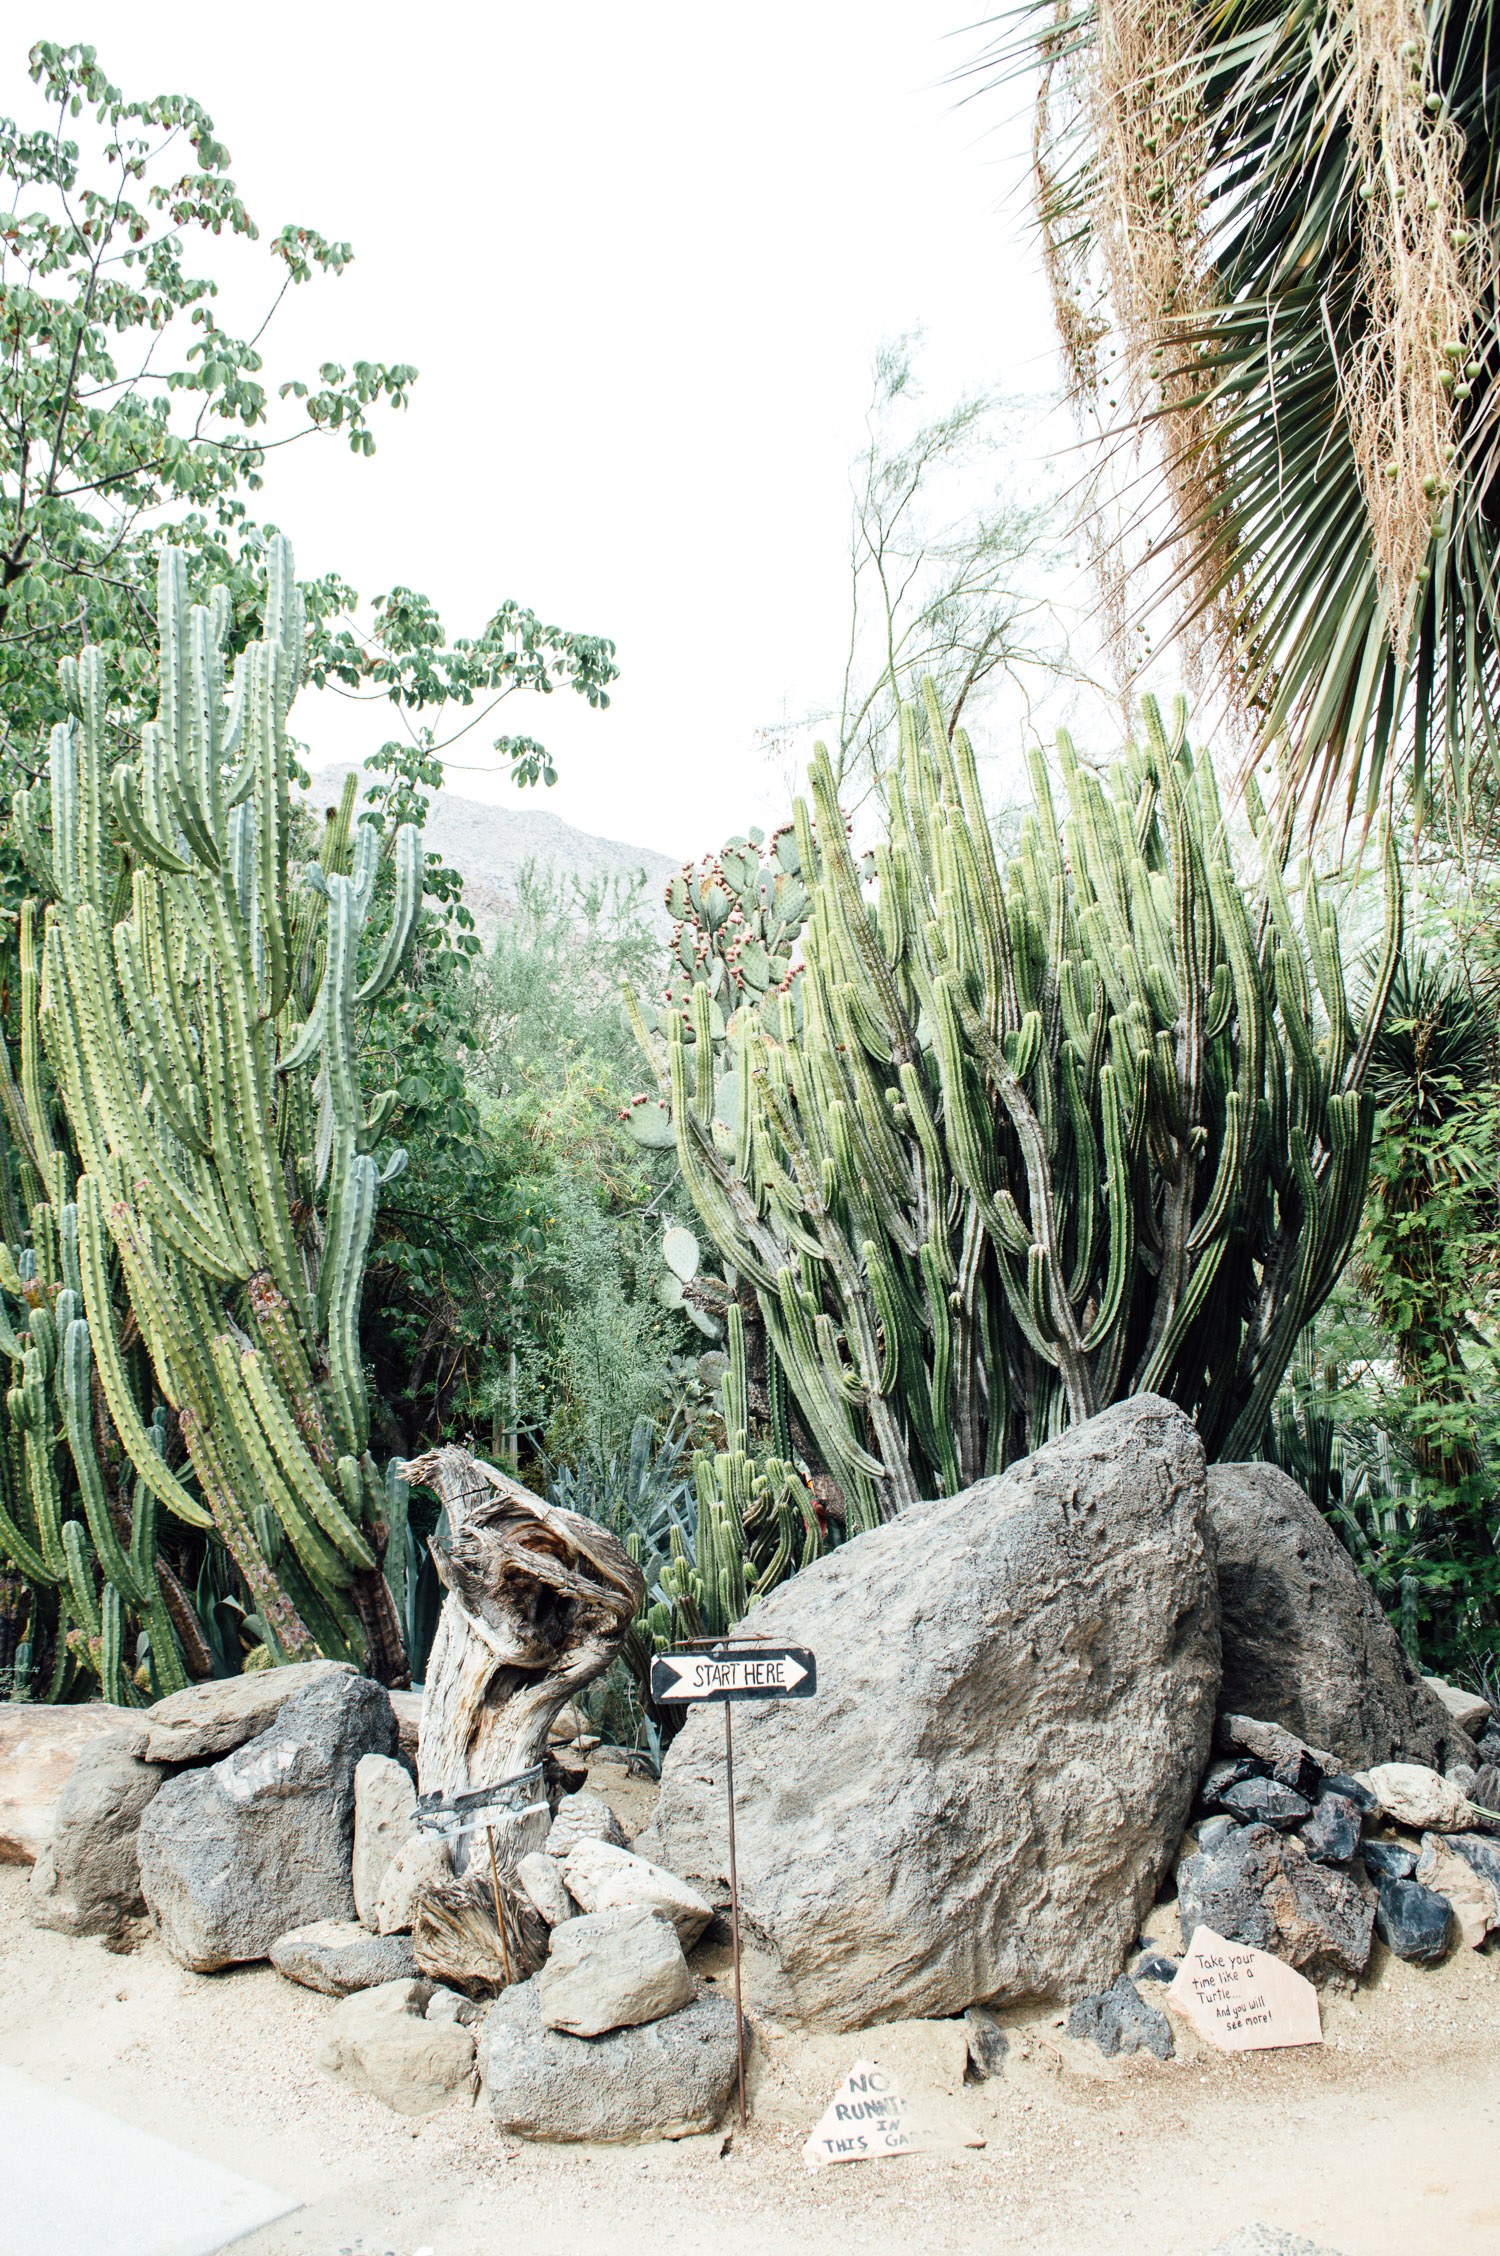 moorten-botanical-gardens-palm-springs-california-weekend-2